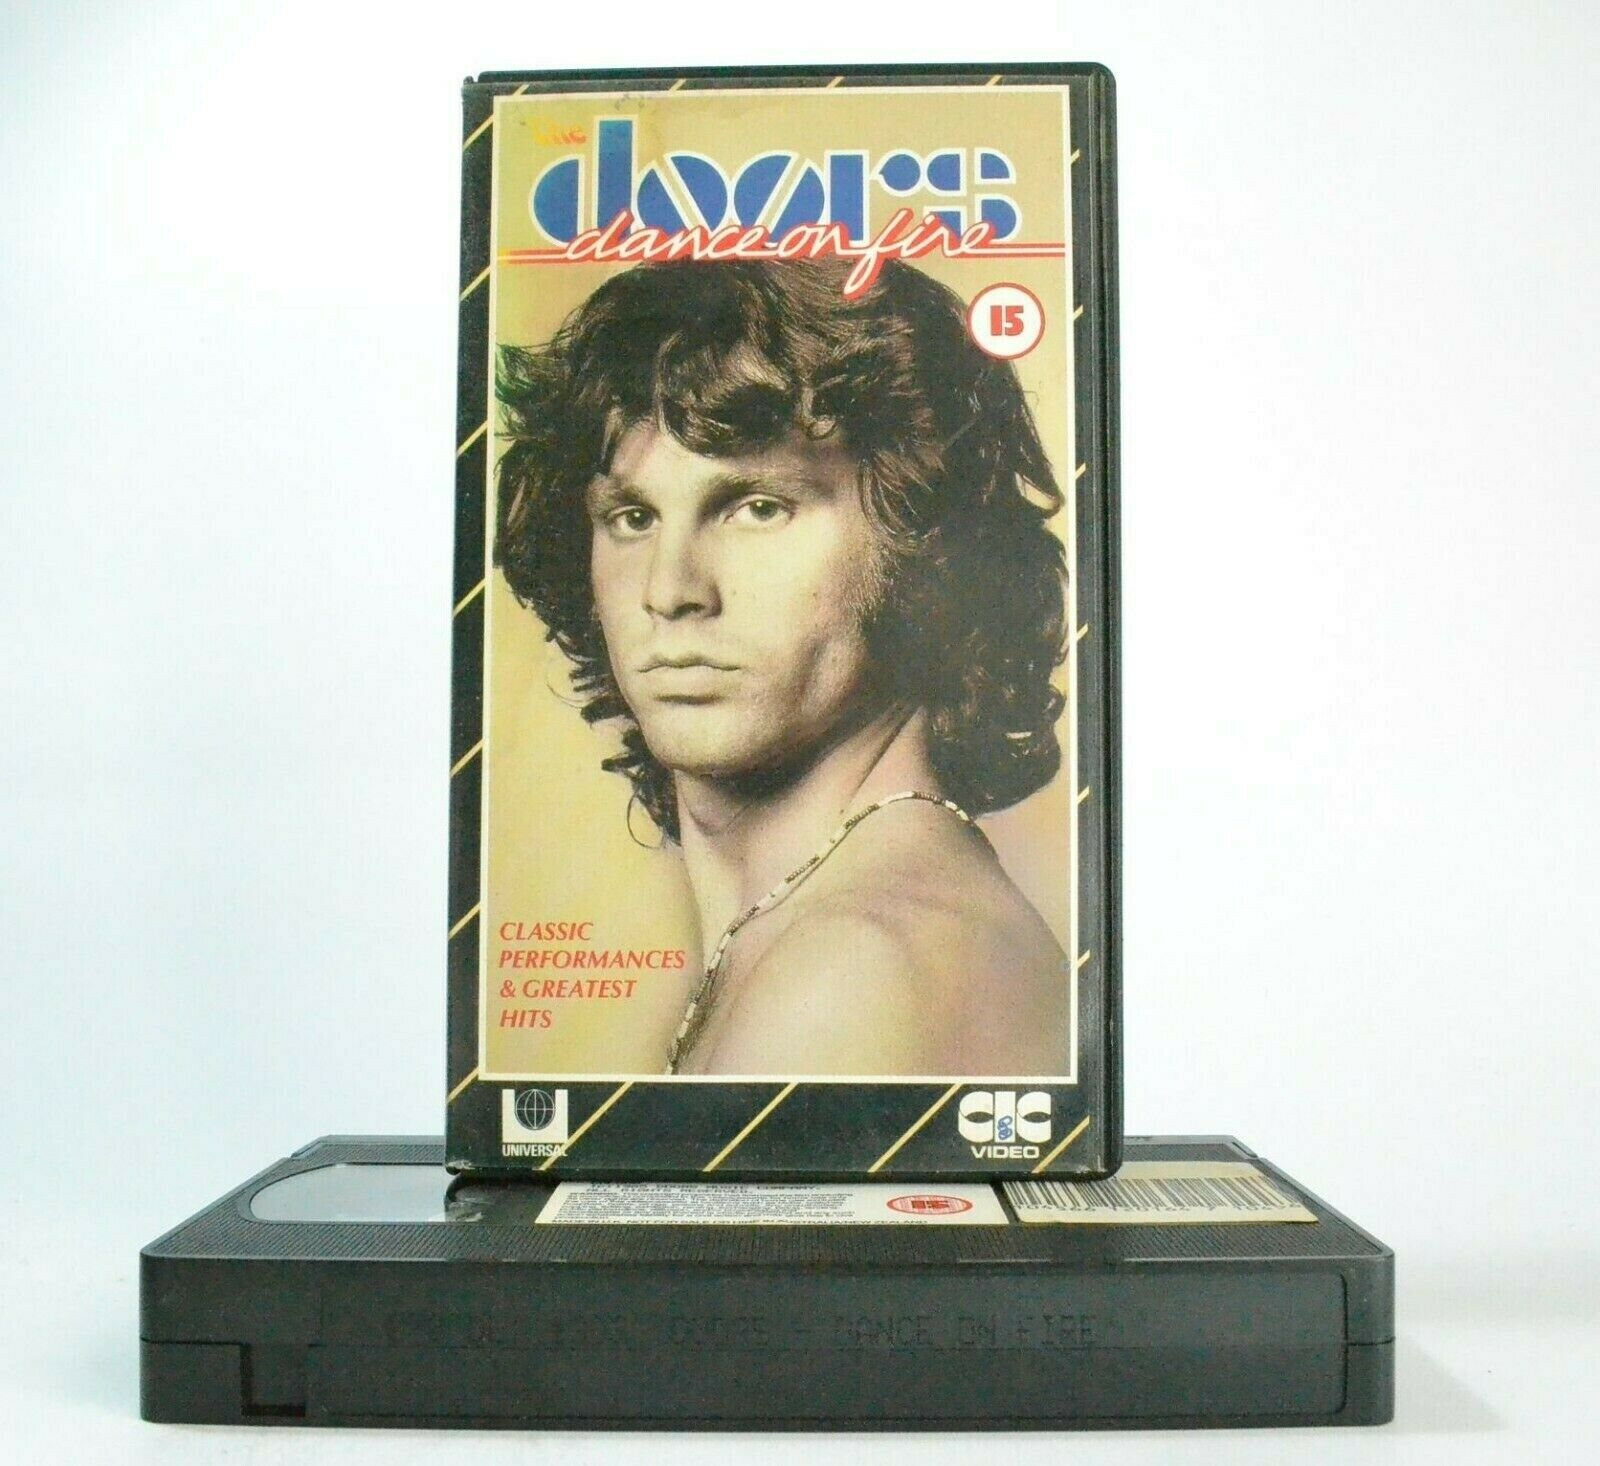 The Doors: Dance On Fire - CIC Video (1985) - Classic Performances - Pal VHS